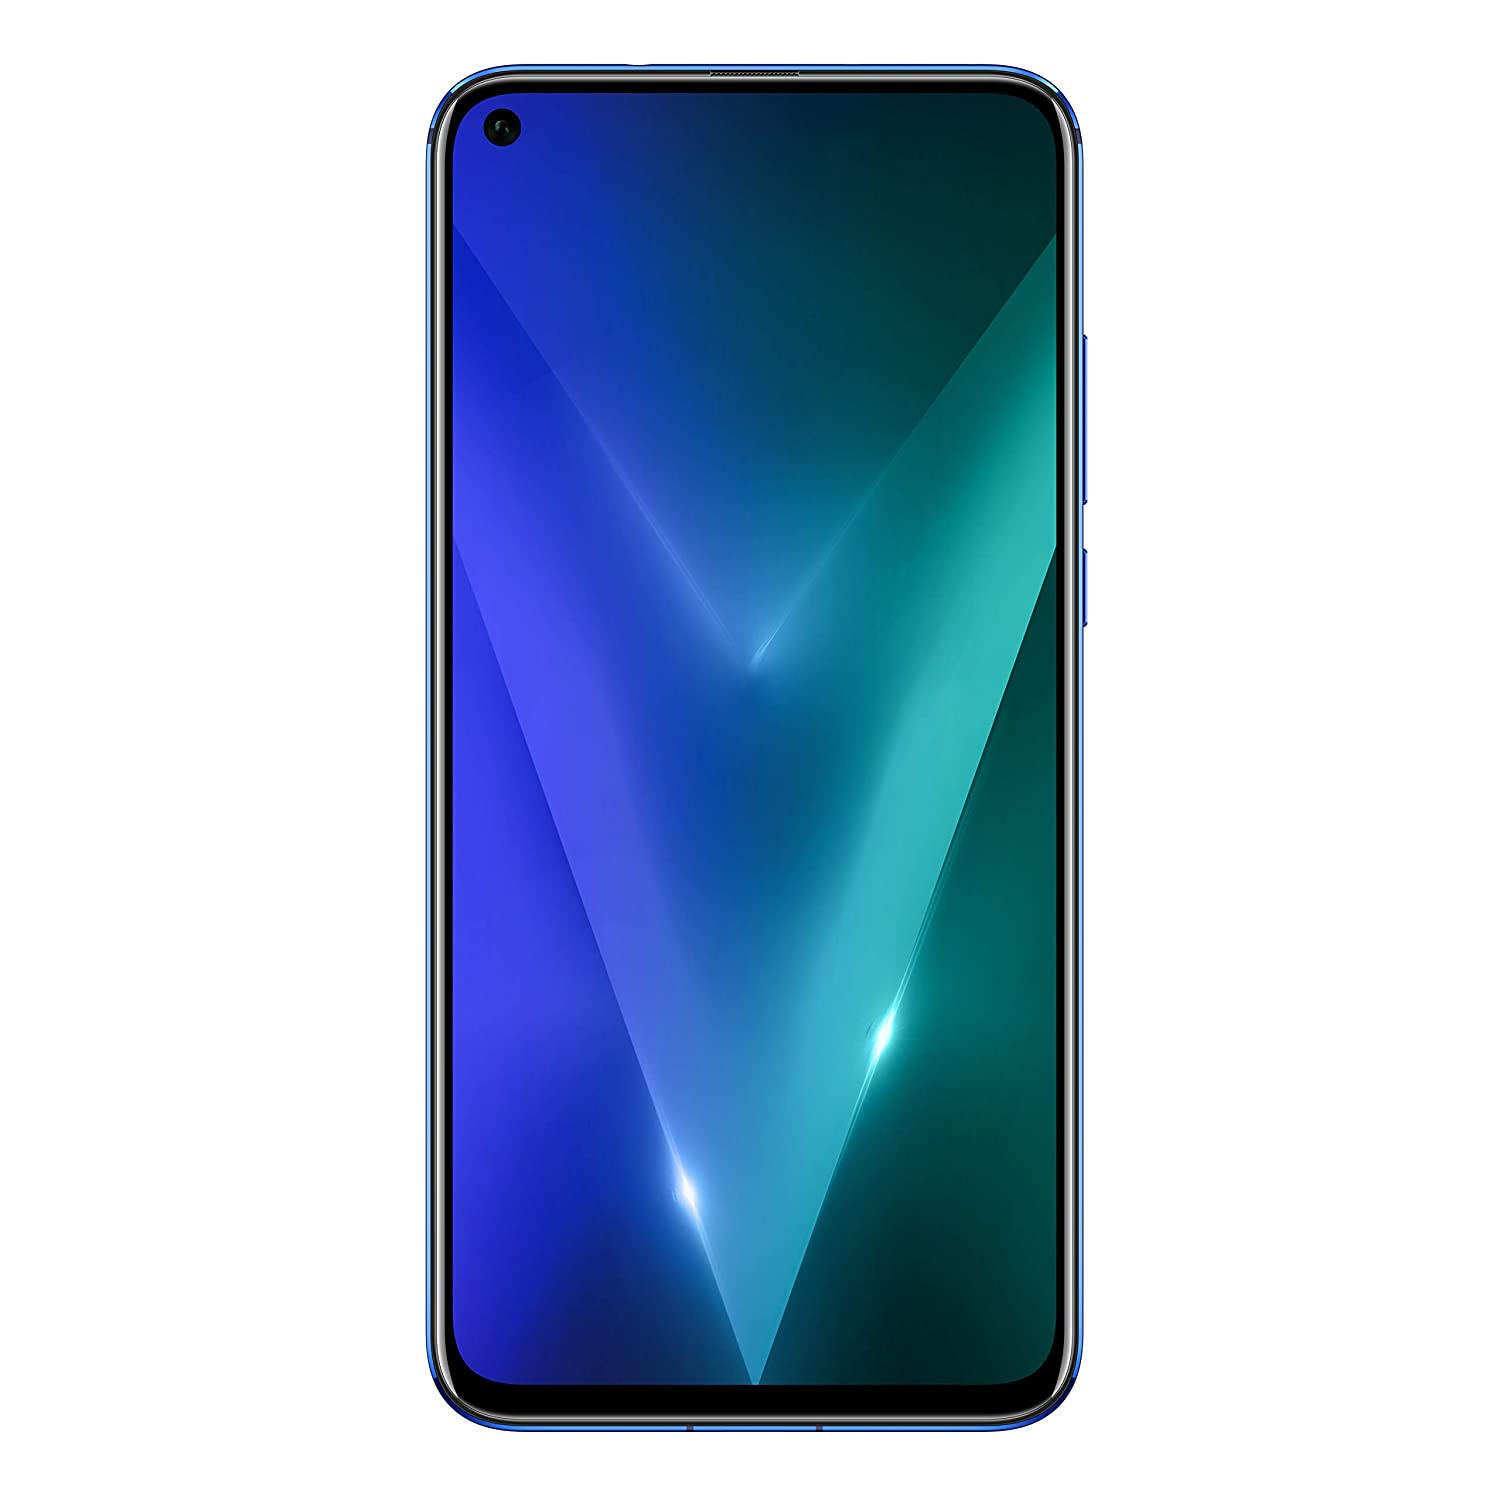 Honor View20 (Sapphire Blue, 6GB RAM, 128GB Storage)